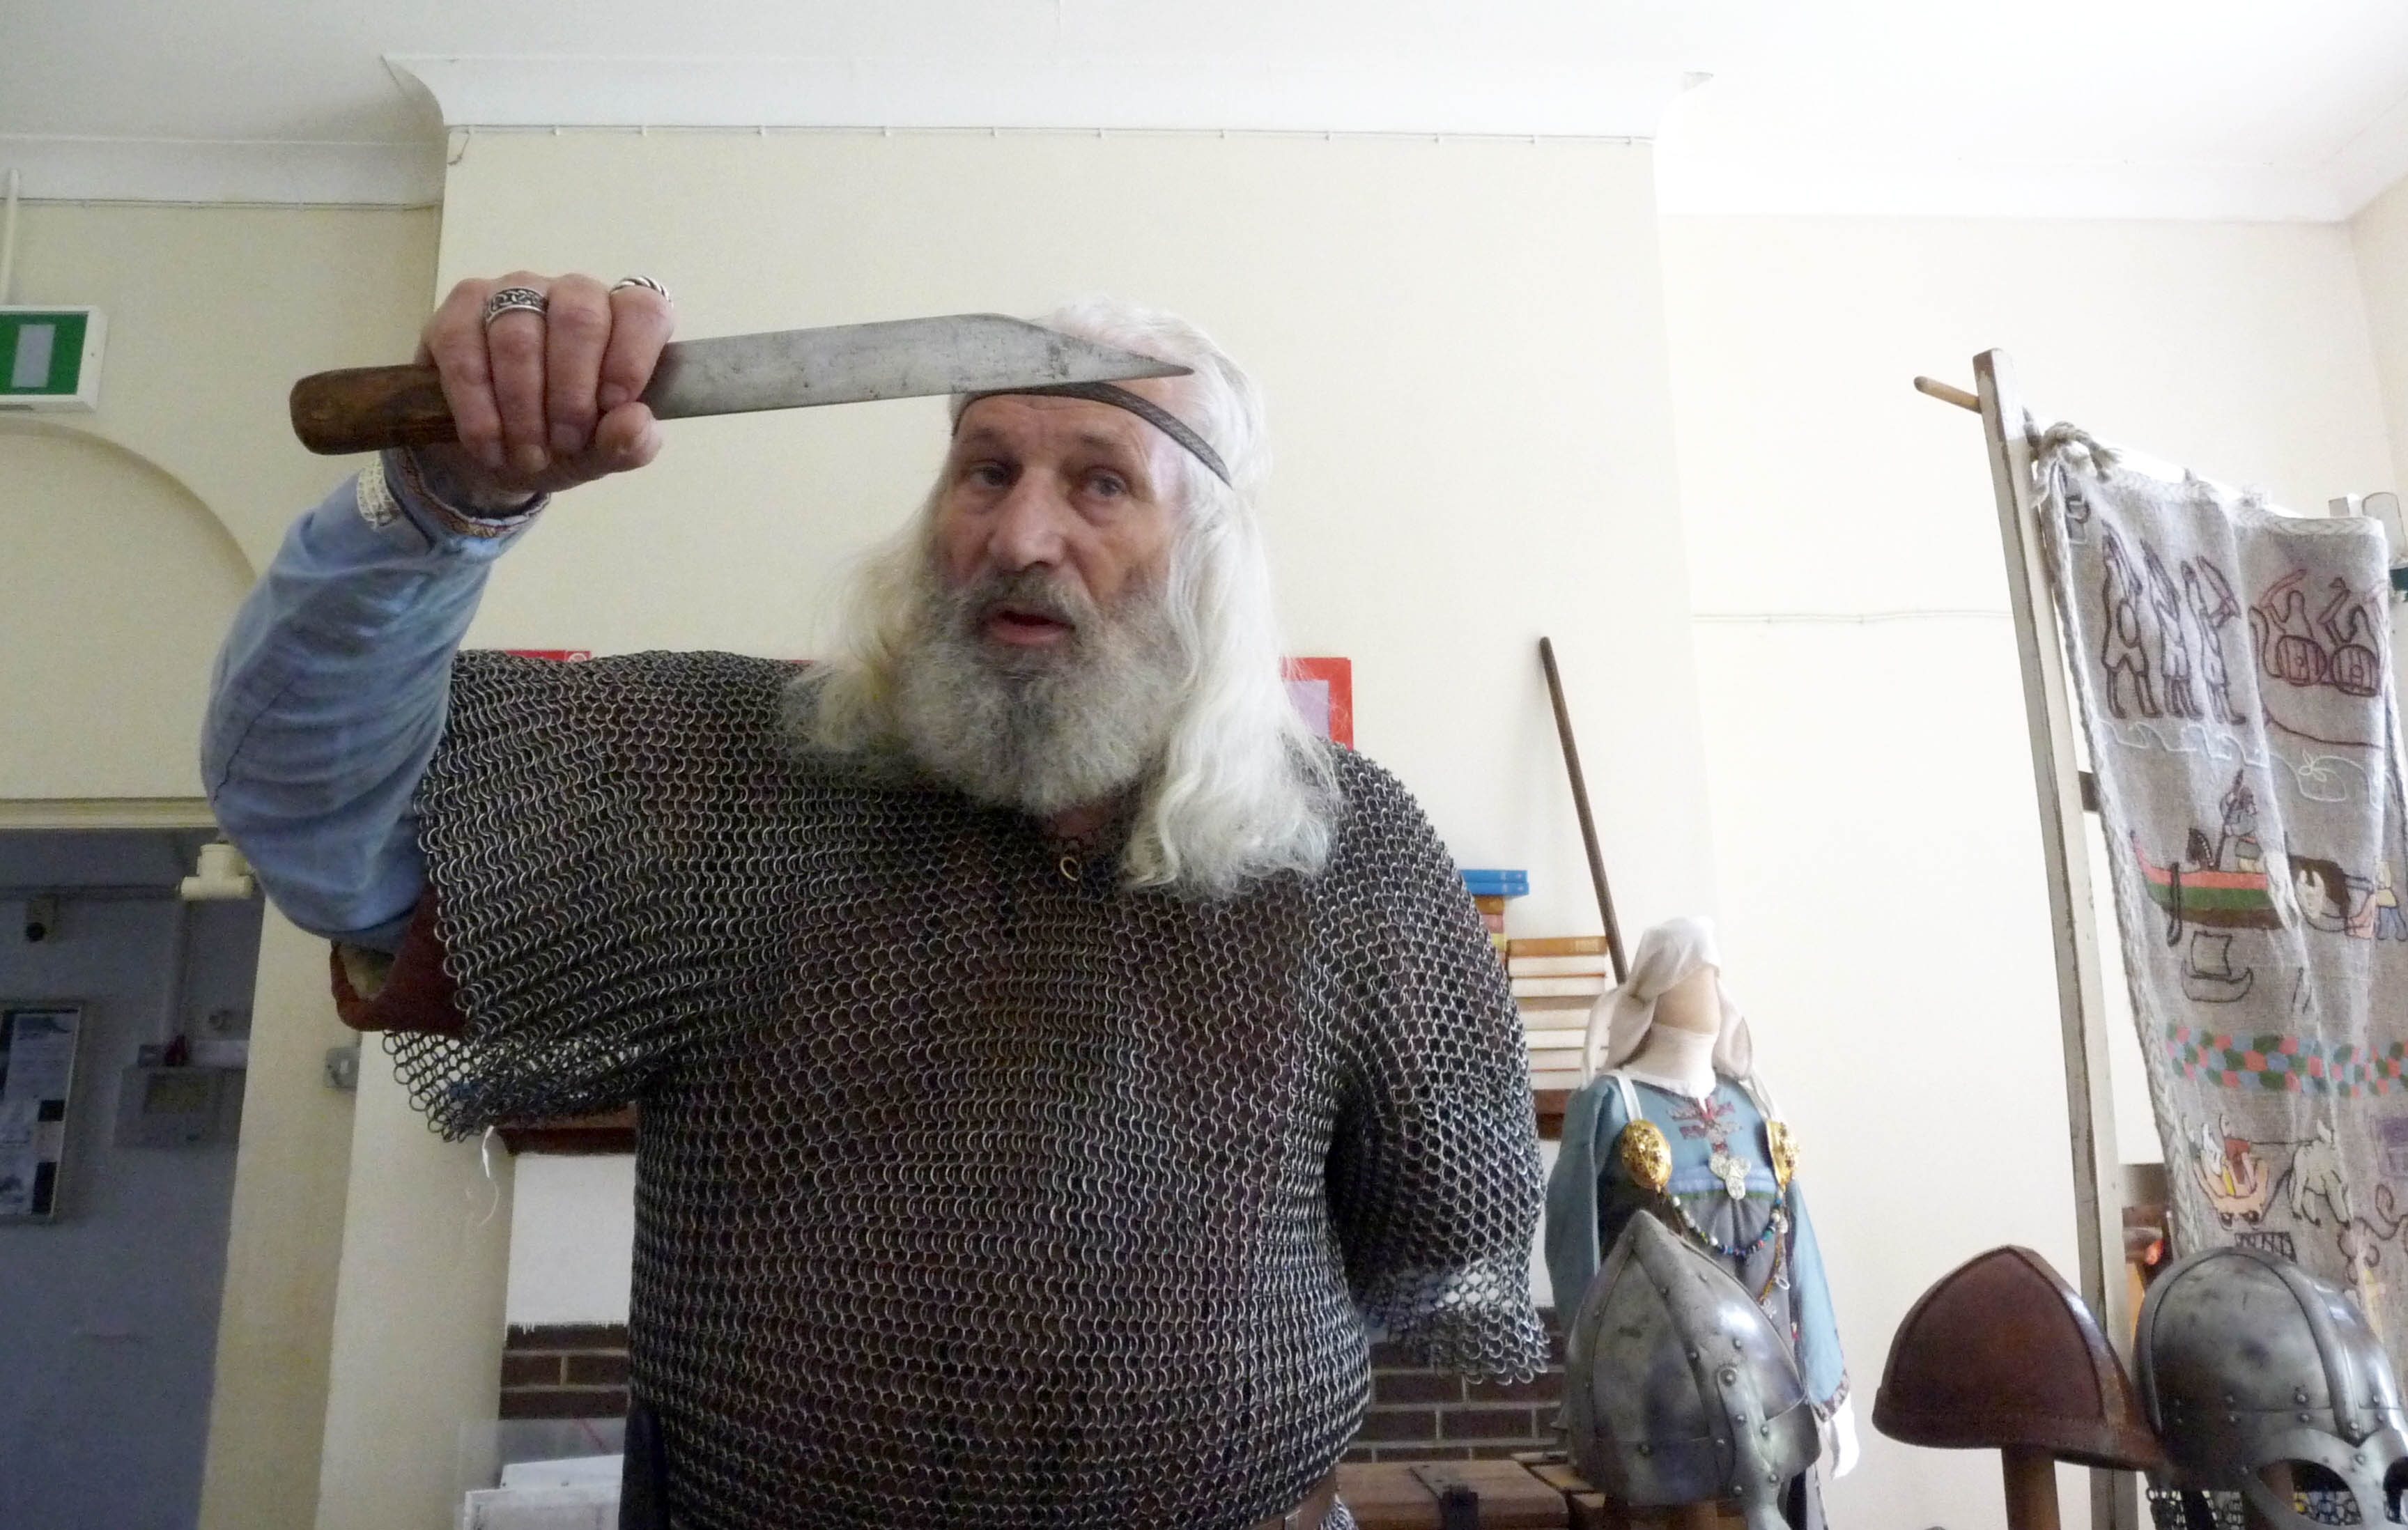 Snorri the Viking with his eating knife